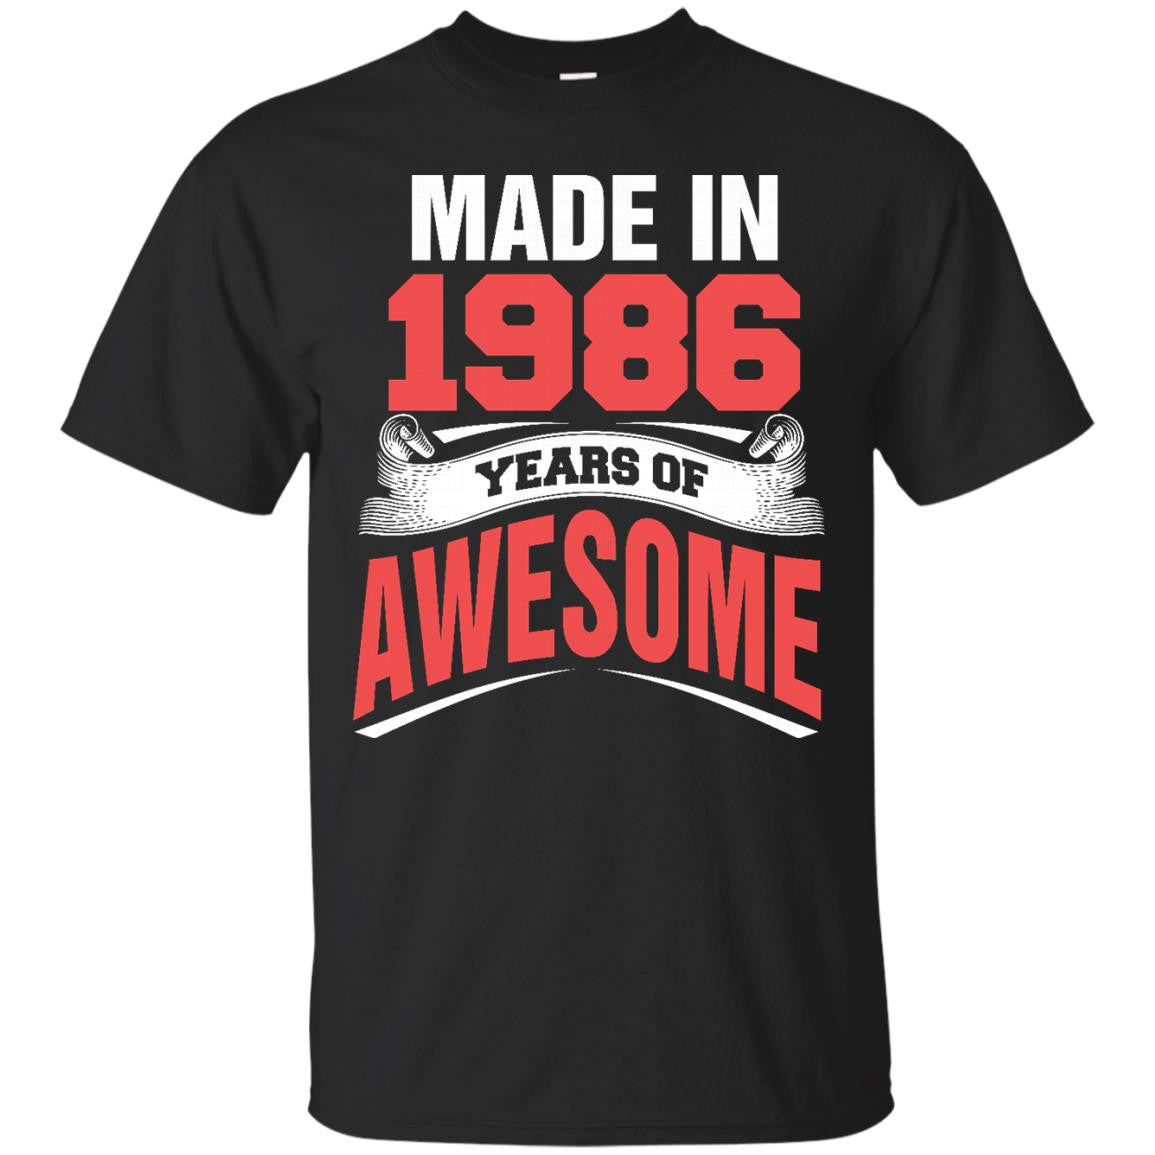 1986 Shirts Made In 1986 Year of Awesome T-shirts Hoodies Sweatshirts